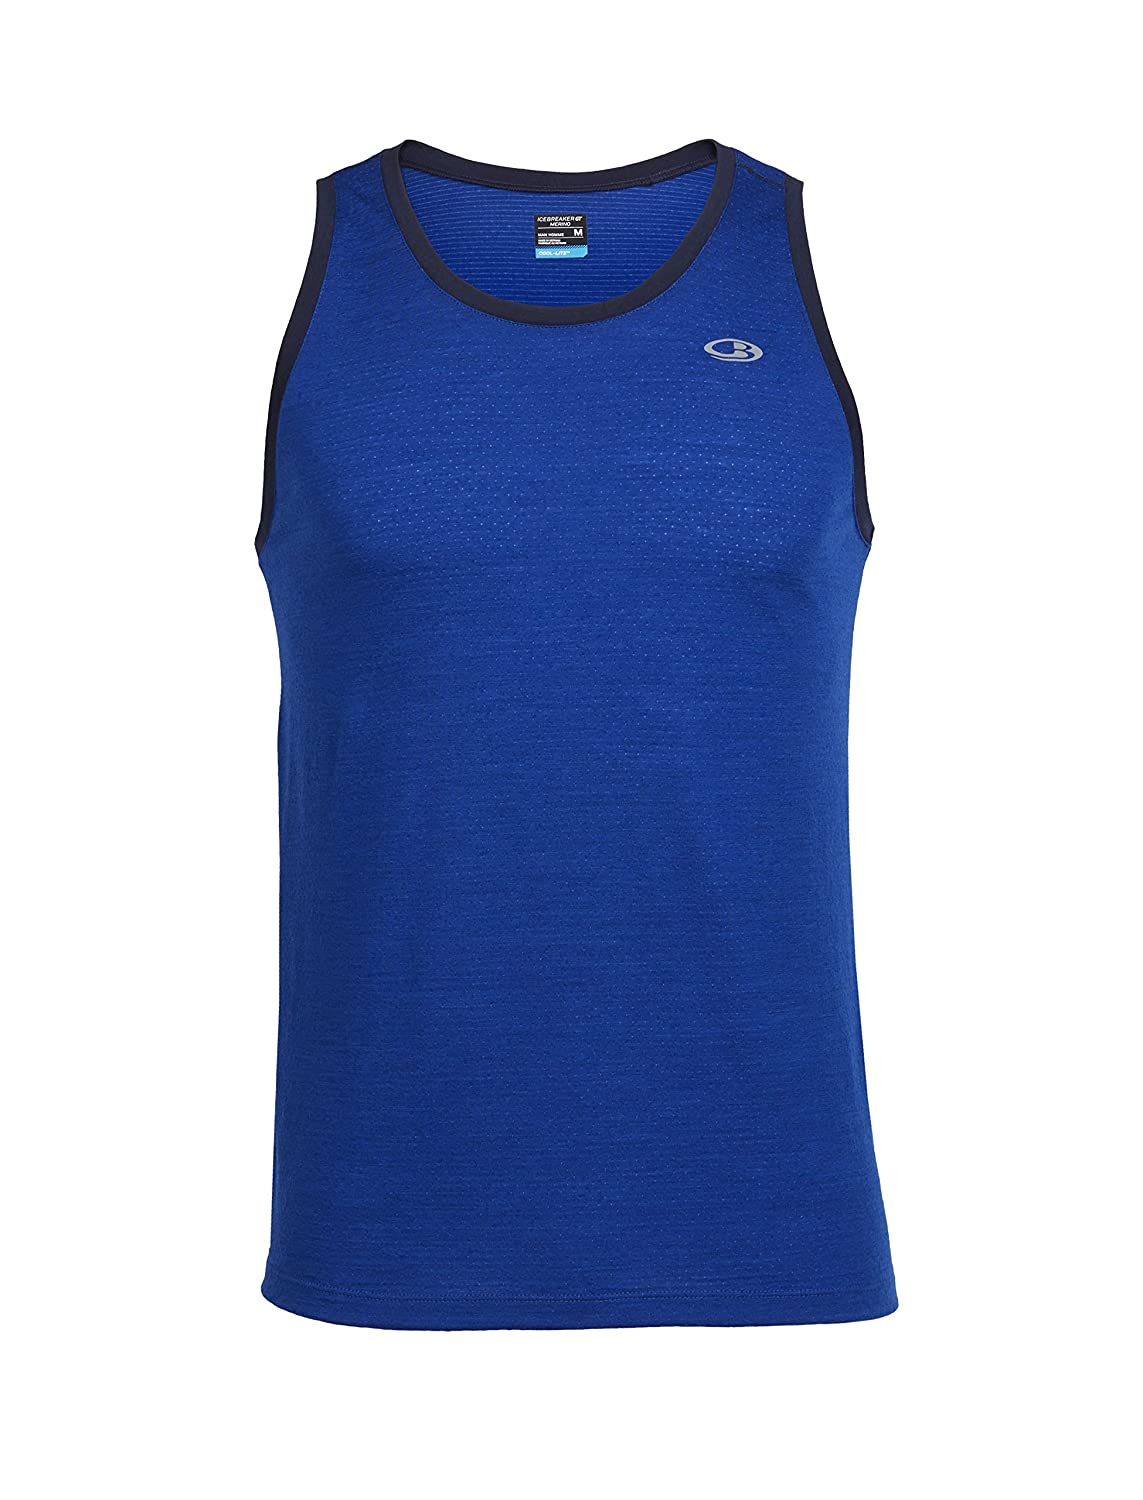 Moisture Wicking Merino Summer Blend Cobalt//Admiral Large Icebreaker USA 103622 Icebreaker Strike Lite Tank Breathable